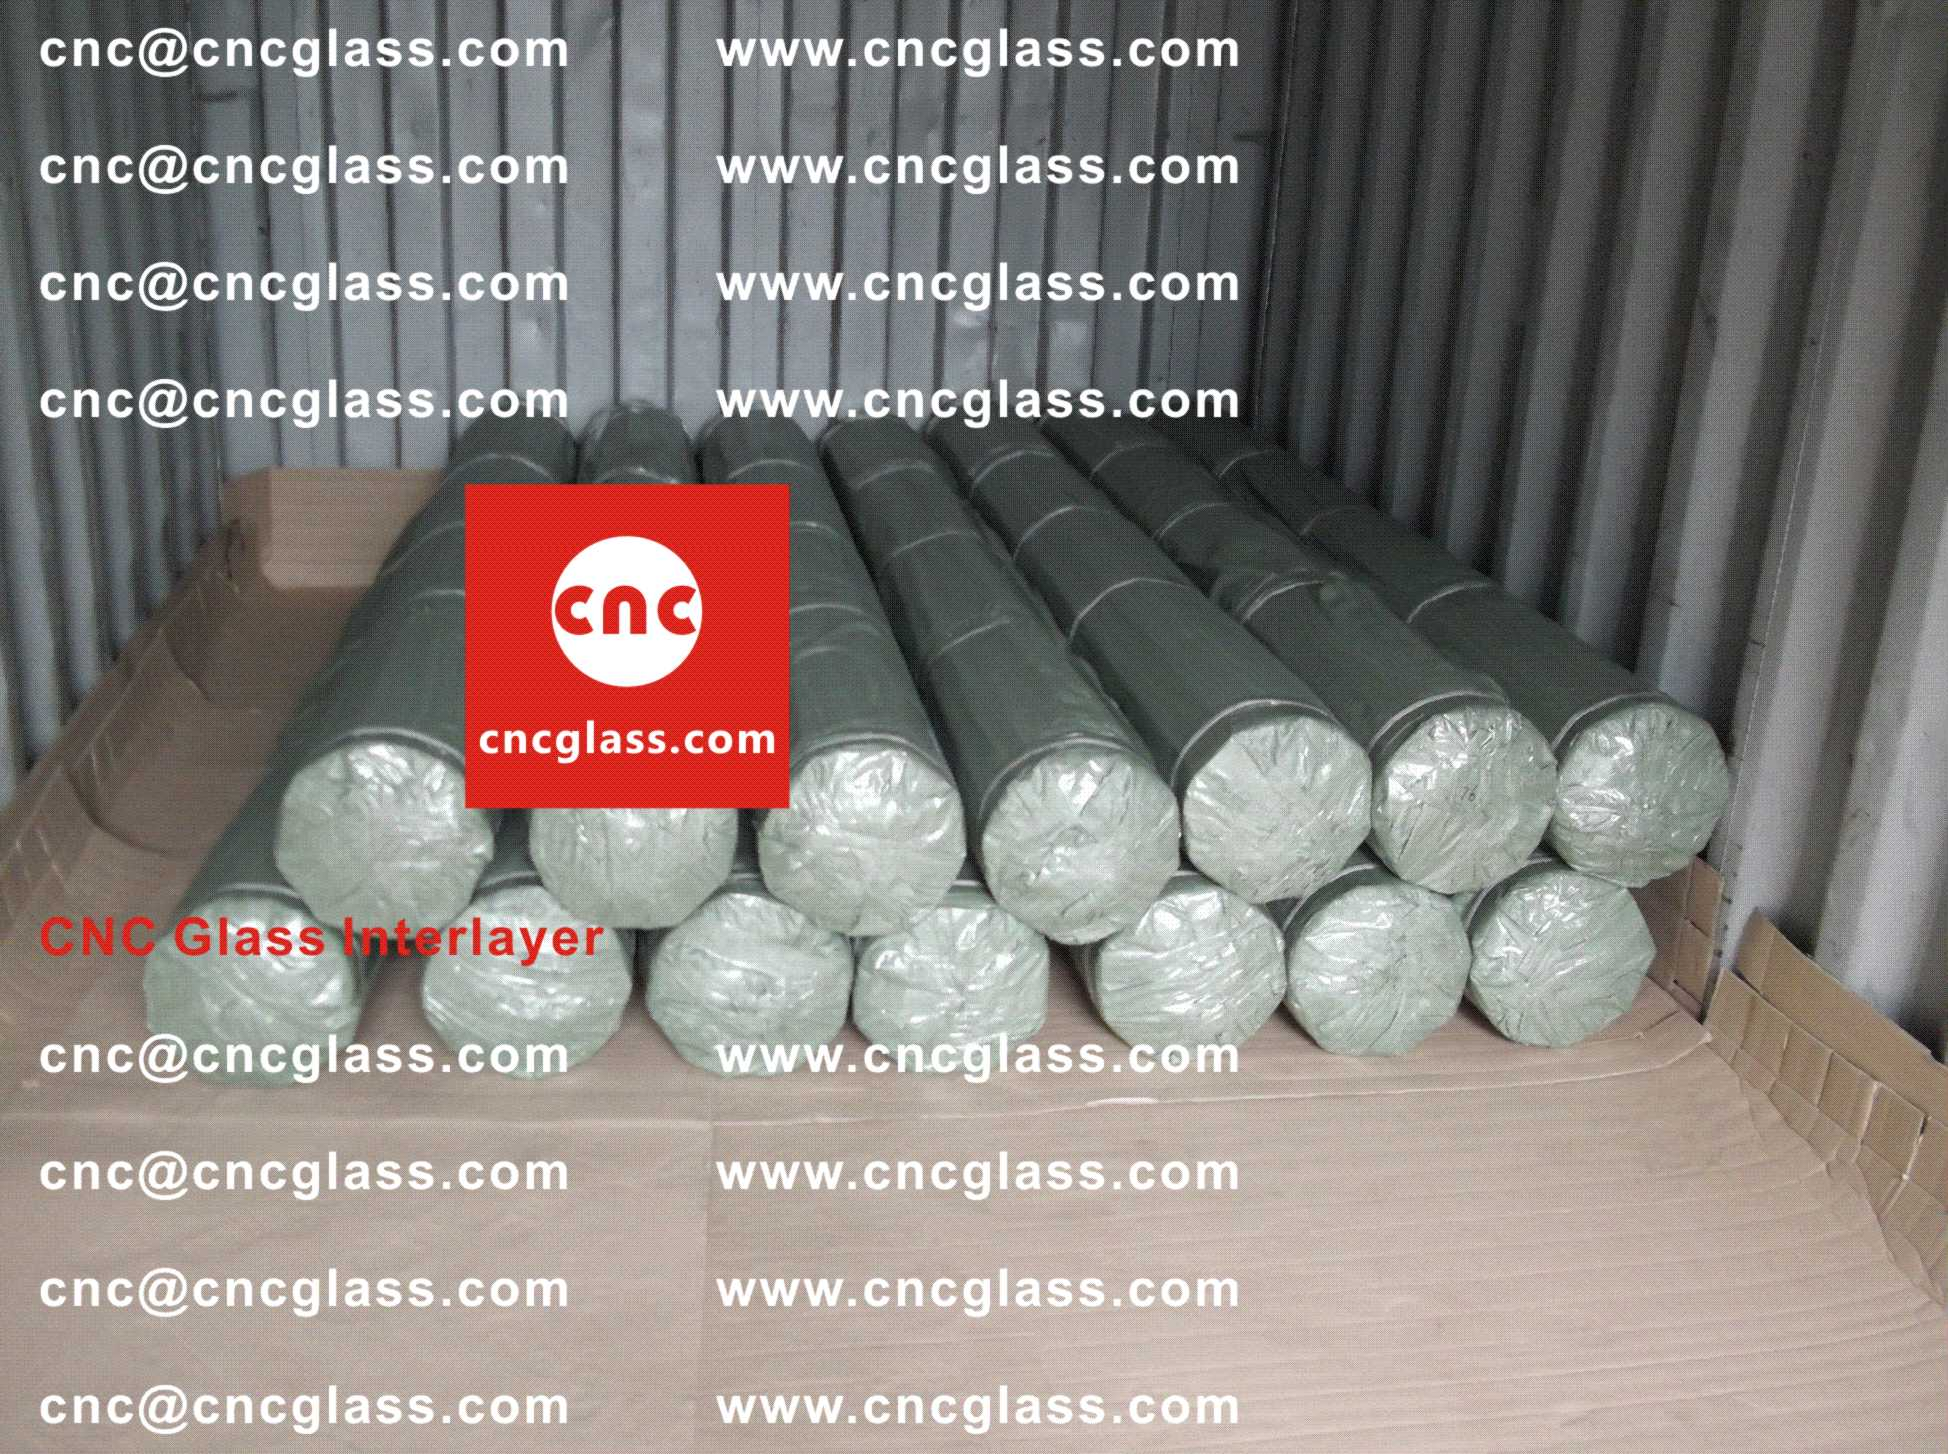 001 Packing Loading EVA Interlayer Film for Safety Laminated Glazing